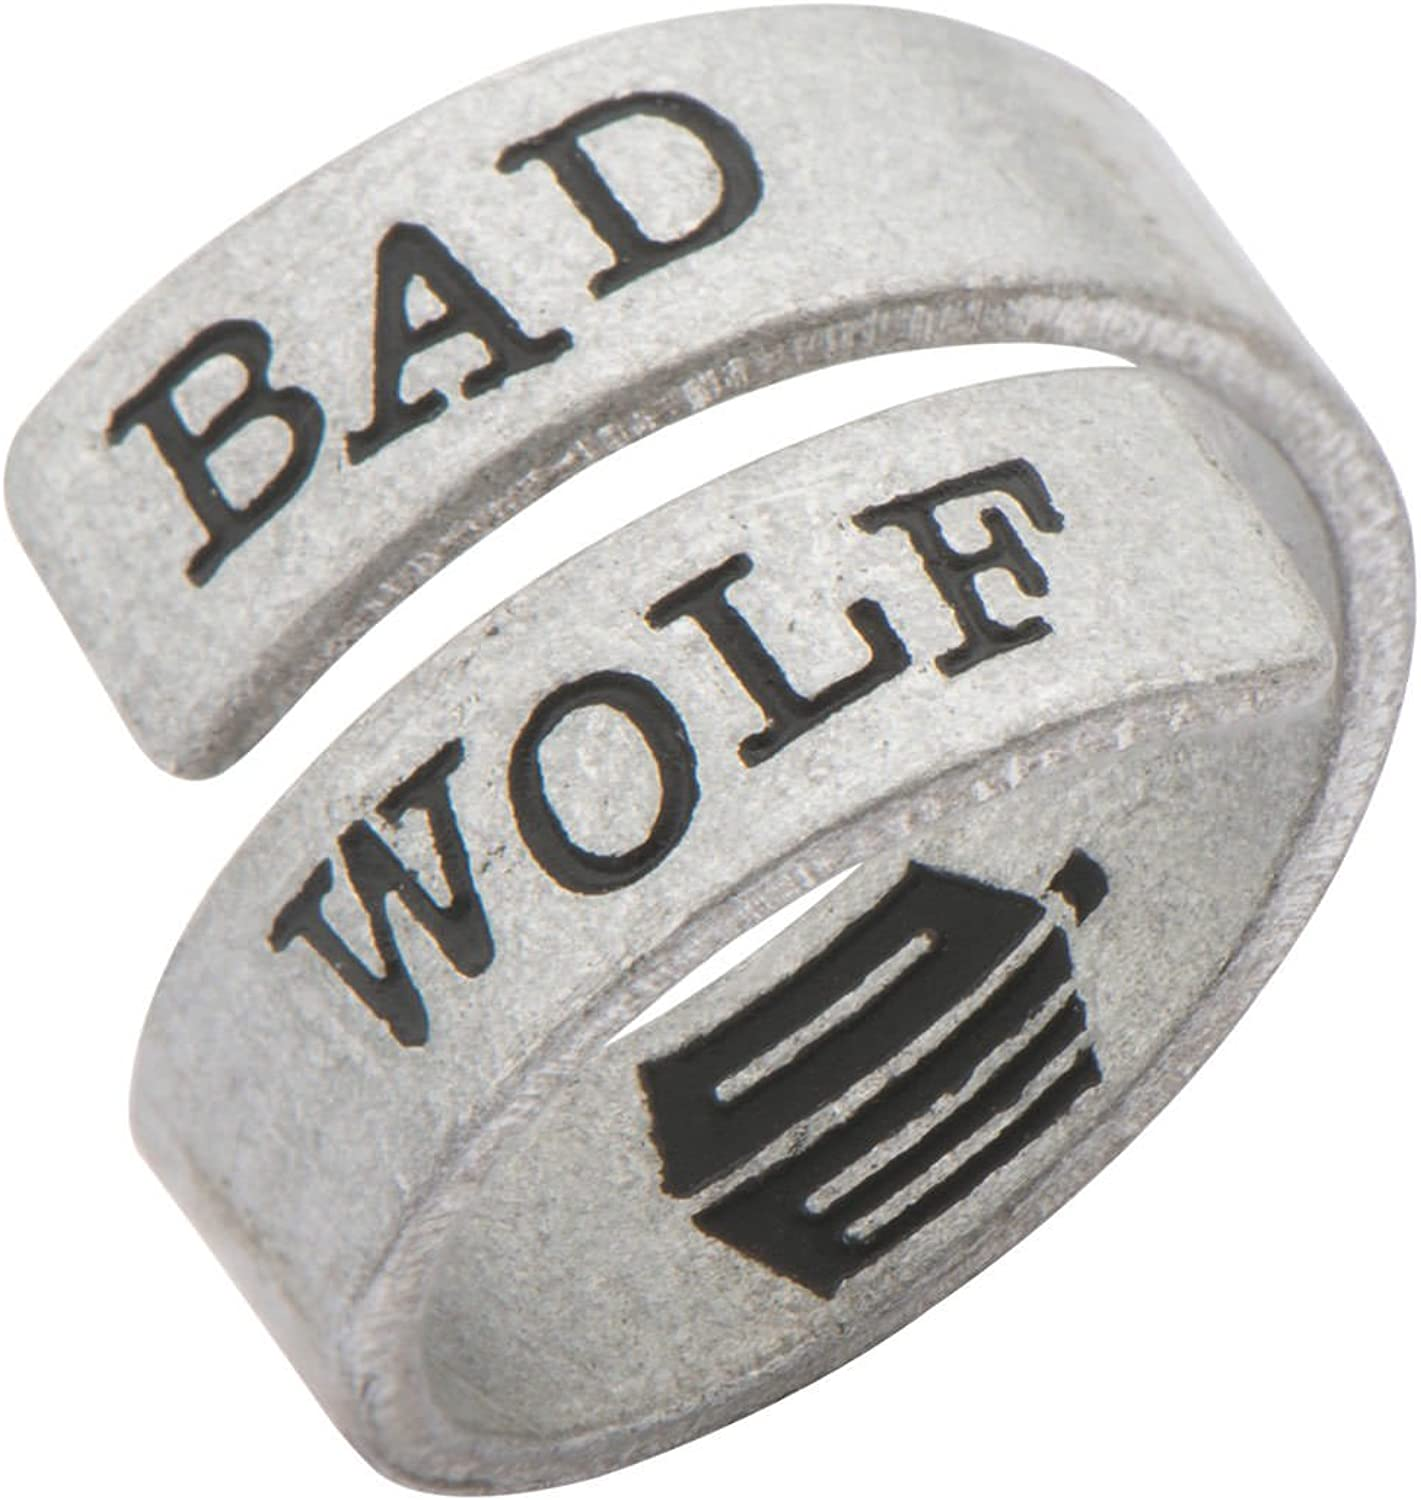 Doctor Who Adjustable Bad Wolf Ring Officially Licensed